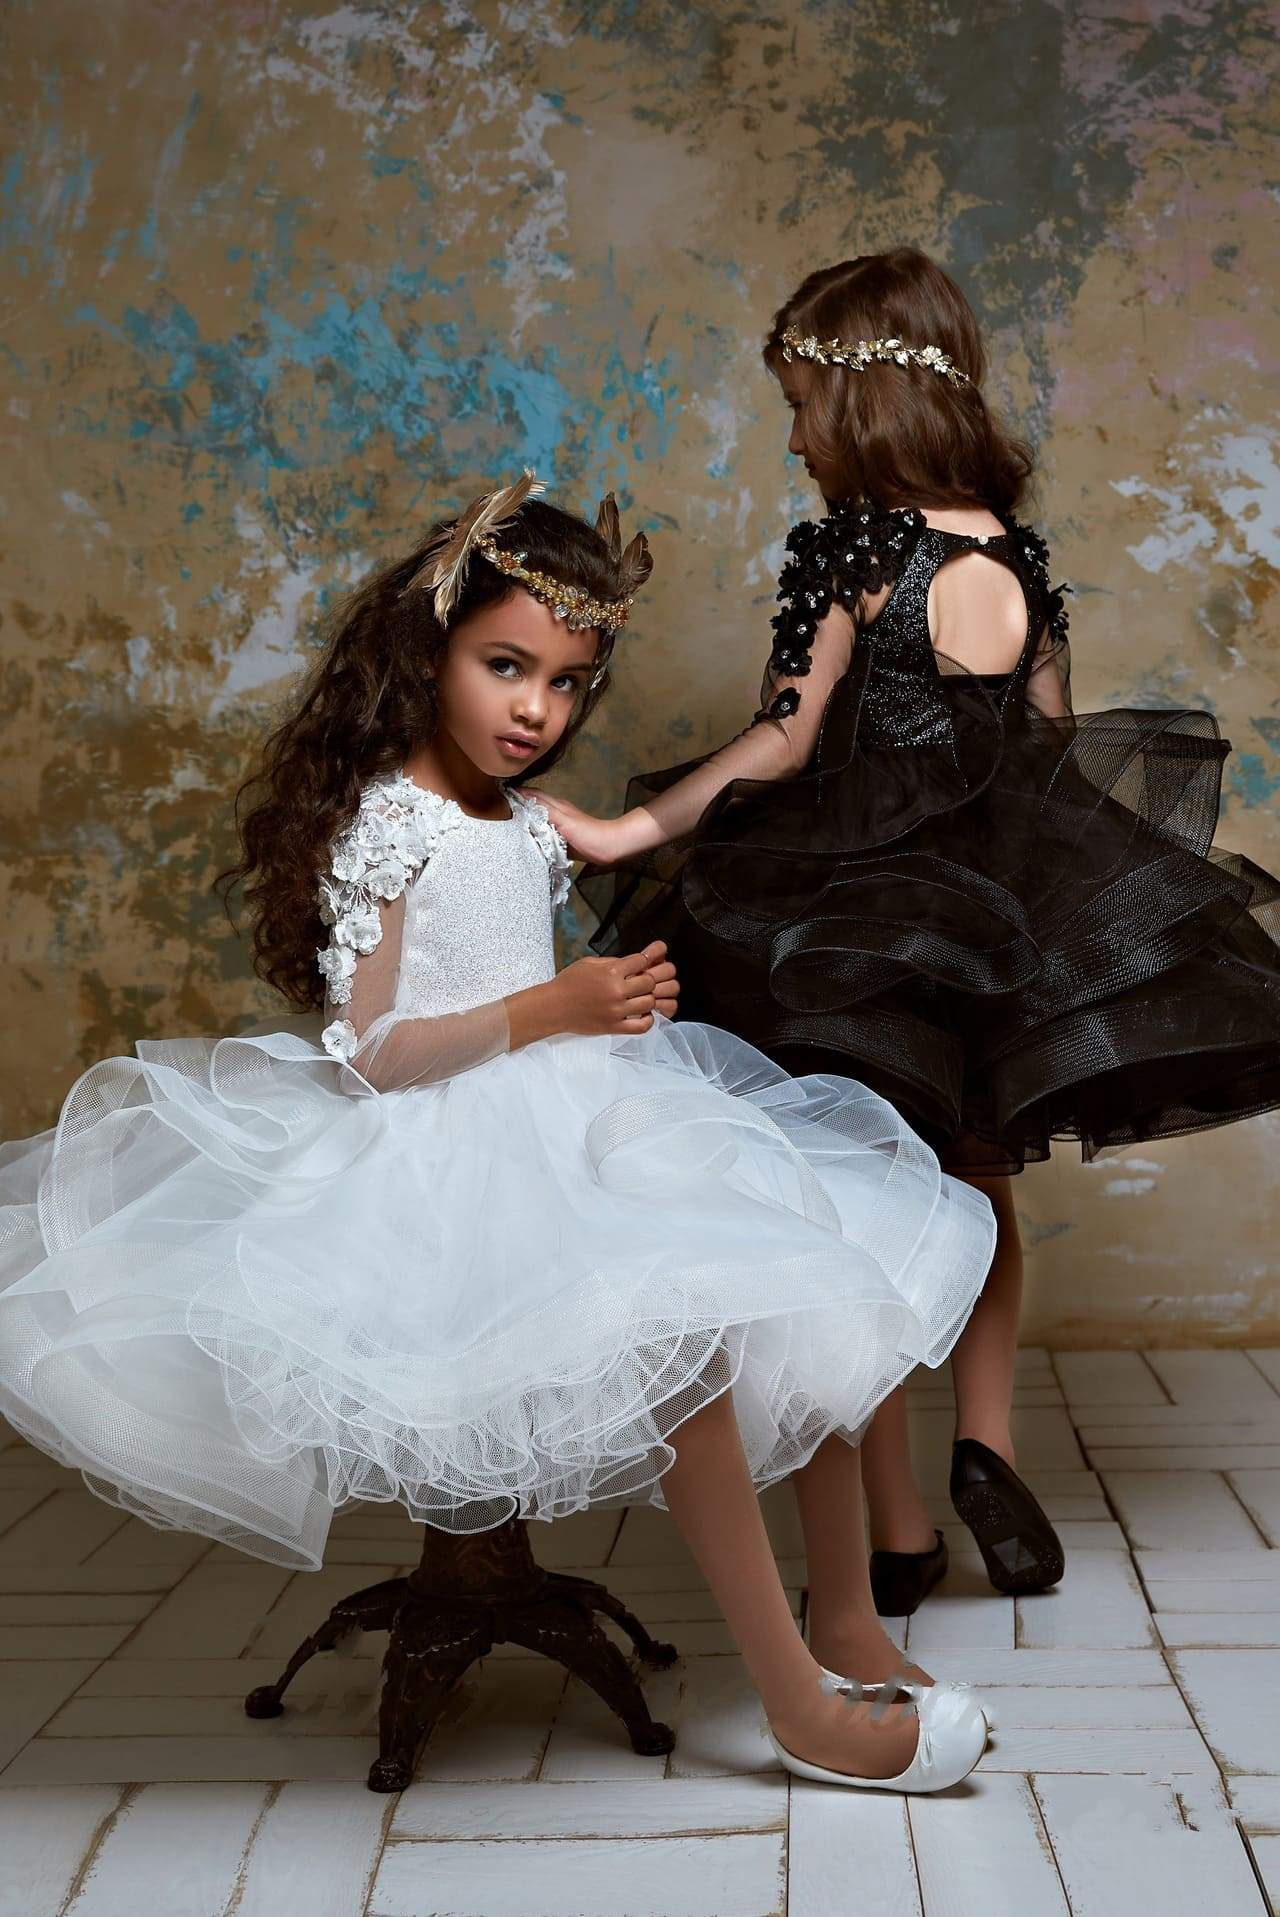 dbffd3da48f0 Shop Flower Girl Dresses: Girls Couture Ruffled Tulle Tutu Dress ...